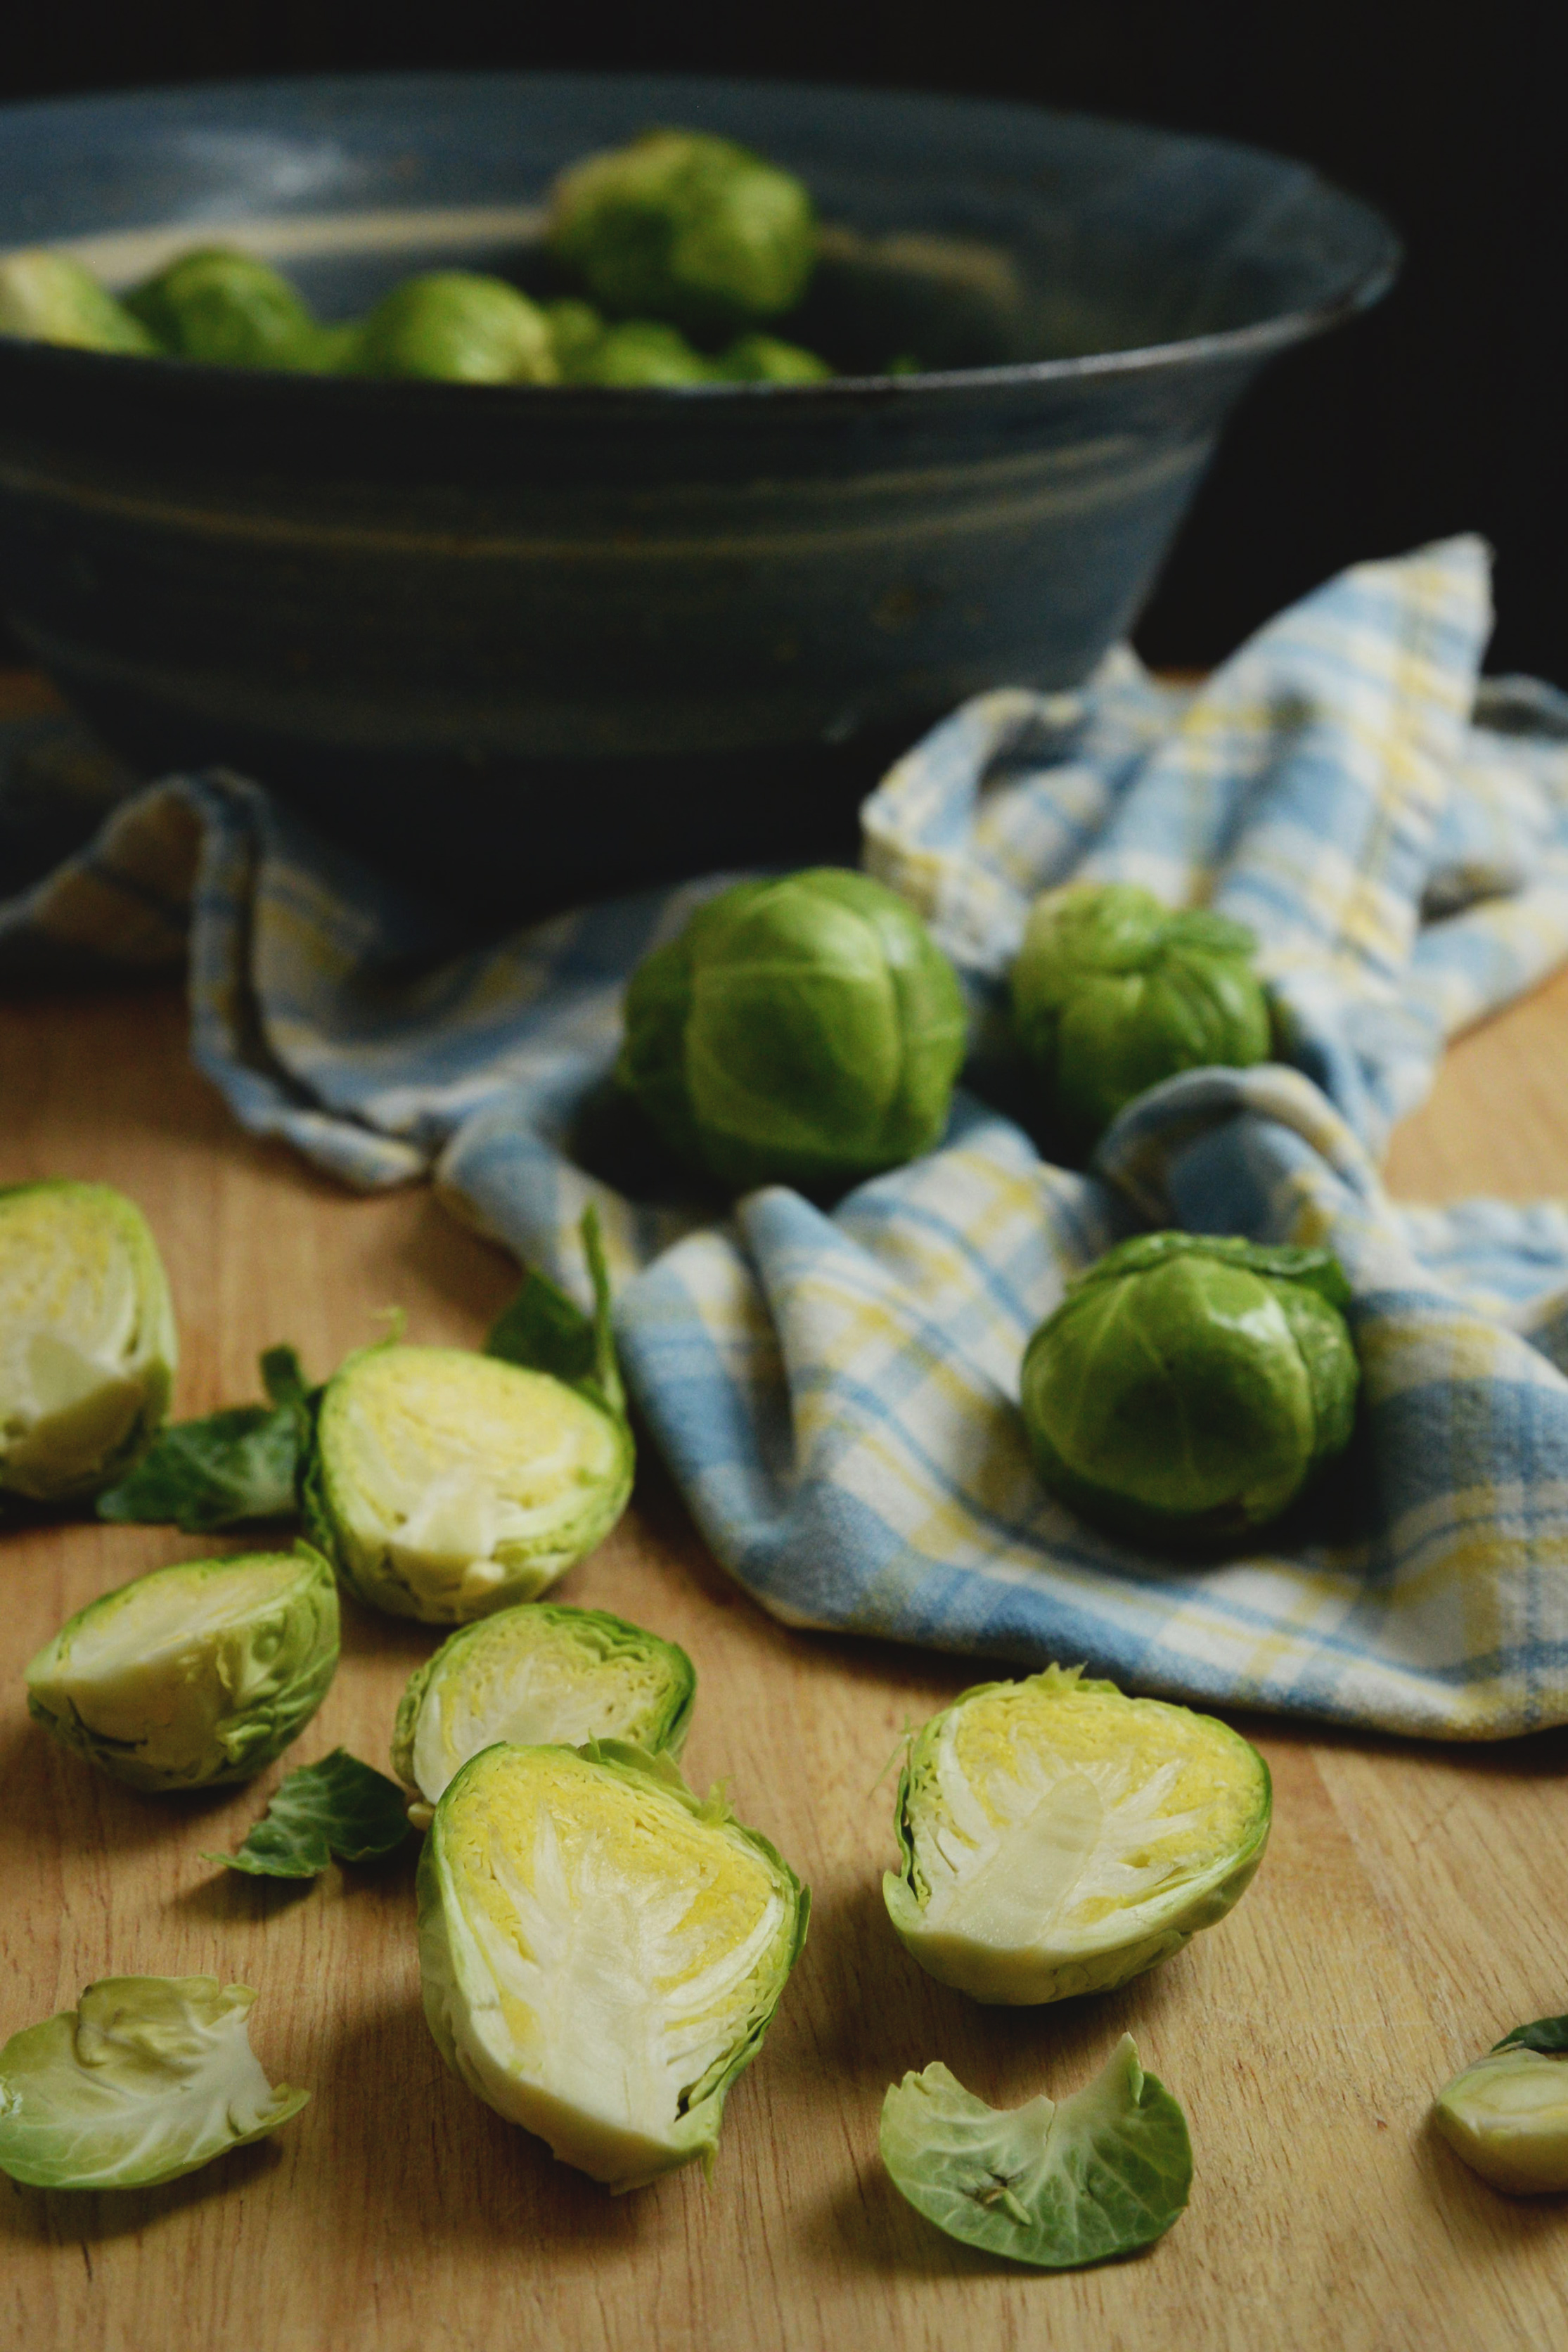 Easy Roasted Brussels Sprouts-trimming the sprouts